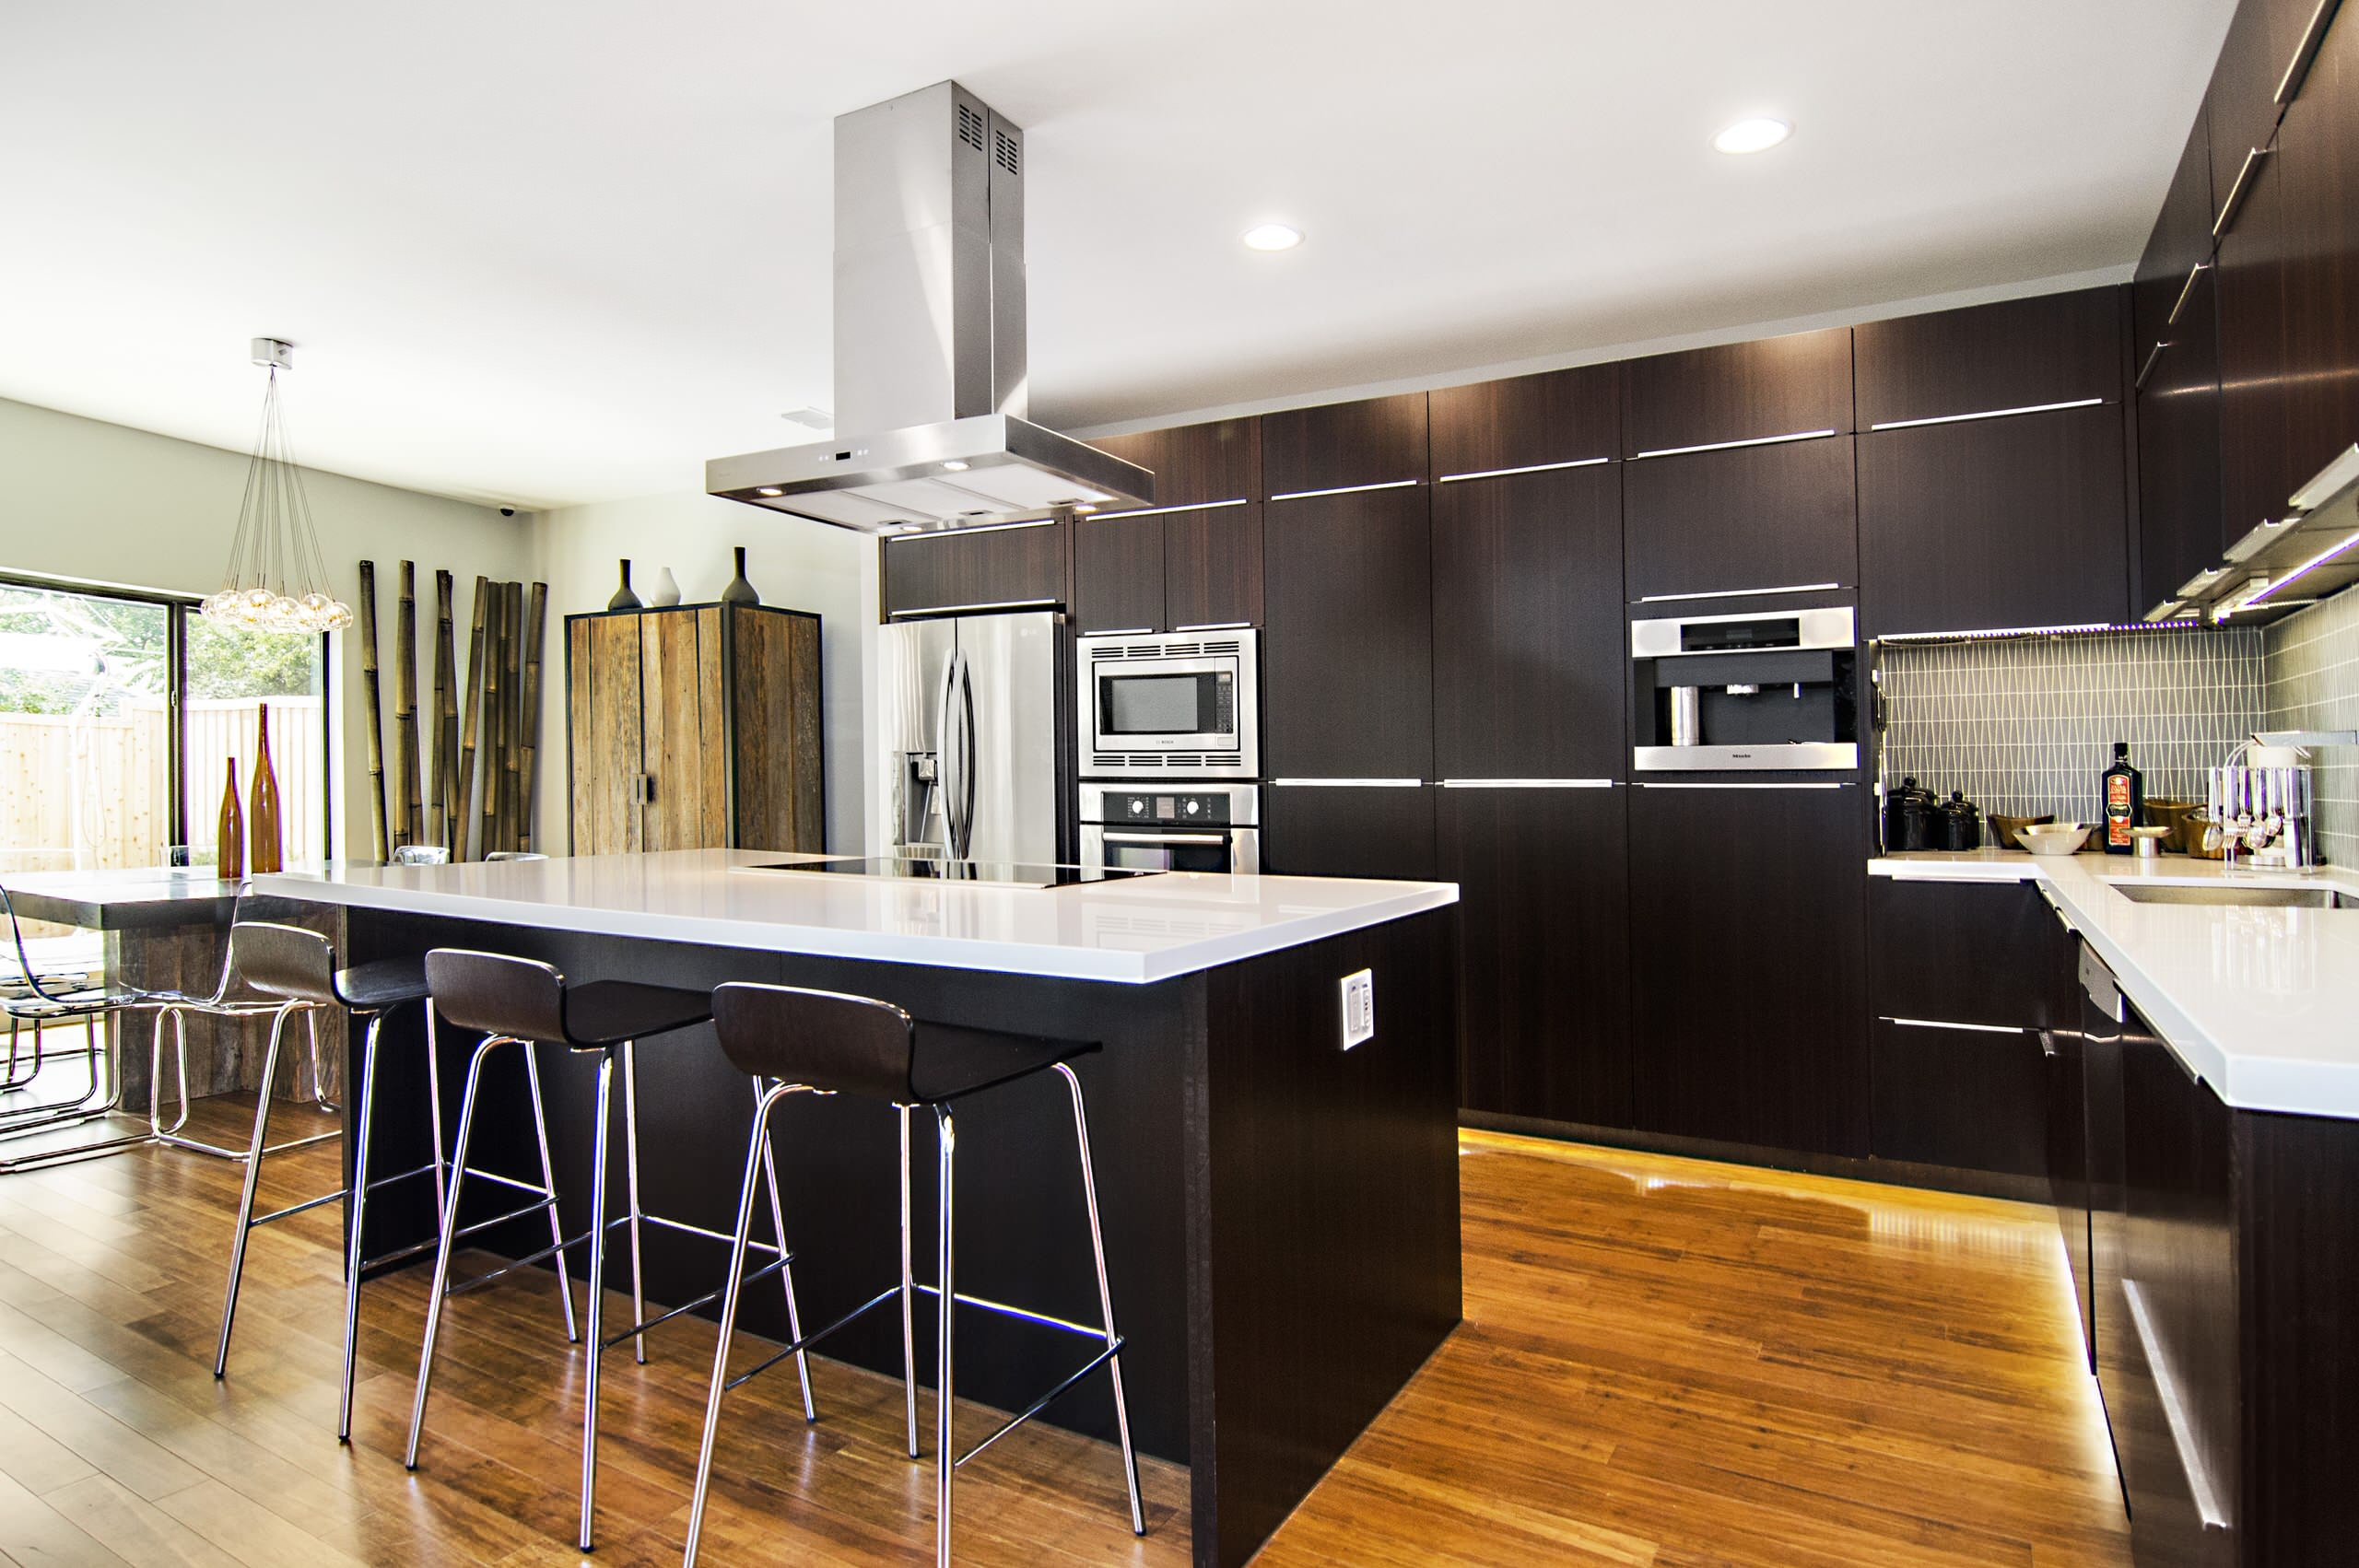 cheap md expect concepts kitchens countertop salisbury remodel what countertops to kitchen plus